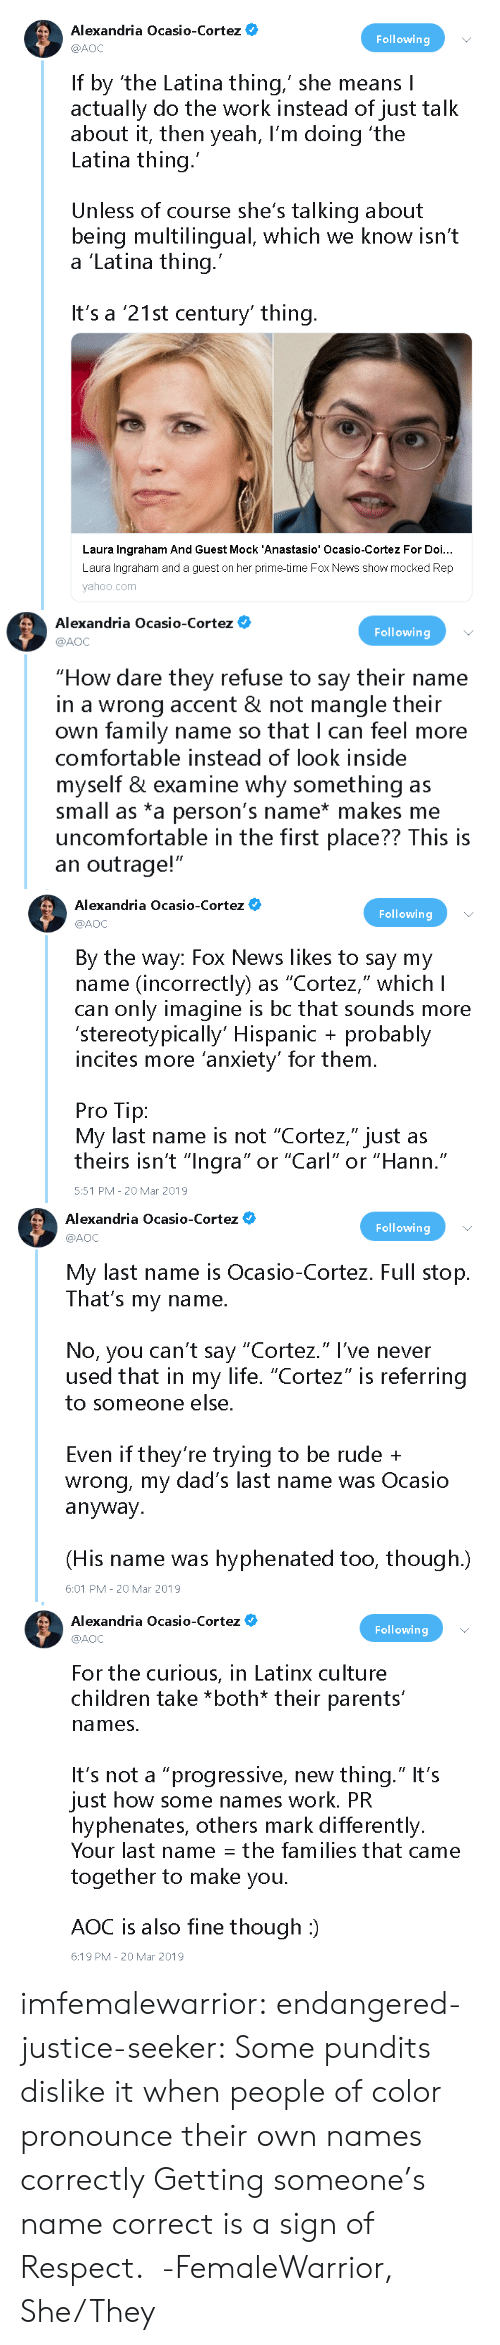 "Pro Tip: Alexandria Ocasio-Cortez  @AOC  Following  If by 'the Latina thing,' she means I  actually do the work instead of just talk  about it, then yeah, I'm doing 'the  Latina thing.  Unless of course she's talking about  being multilingual, which we know isn't  a 'Latina thing  It's a '21st century' thing  Laura Ingraham And Guest Mock 'Anastasio' Ocasio-Cortez For Doi...  Laura Ingraham and a guest on her prime-time Fox News show mocked Rep  yahoo.com   Alexandria Ocasio-Cortez O  @AOC  Following  ""How dare they refuse to say their name  in a wrong accent & not mangle their  own family name so that I can feel more  comfortable instead of look inside  myself & examine why something as  small as *a person's name* makes me  uncomfortable in the first place?? This is  an outrage!""   Alexandria Ocasio-Cortez*  Following  @AOC  By the way: Fox News likes to say my  name (incorrectly) as ""Cortez,"" which lI  can only imagine is bc that sounds more  'stereotypically' Hispanic probably  incites more anxiety' for them  Pro Tip:  My last name is not ""Cortez,"" just as  theirs isn't ""Inara"" or ""Carl"" or ""Hann  .""  5:51 PM -20 Mar 2019   Alexandria Ocasio-Cortez  Following  @AOC  My last name is Ocasio-Cortez. Full stop.  That's my name.  No, you can't say ""Cortez."" l've never  used that in my life. ""Cortez"" is referring  to someone else  Even if they're trying to be rude +  wrong, my dad's last name was Ocasio  anyway.  (His name was hyphenated too, though.)  6:01 PM 20 Mar 2019   Alexandria Ocasio-Cortez  @AOC  Following  For the curious, in Latinx culture  children take *both* their parents'  names.  It's not a ""progressive, new thing."" It's  just how some names work. PR  hyphenates, others mark differently.  Your last name: the families that came  together to make you.  AOC is also fine though :)  6:19 PM-20 Mar 2019 imfemalewarrior:  endangered-justice-seeker:  Some pundits dislike it when people of color pronounce their own names correctly   Getting someone's name correct is a sign of Respect.  -FemaleWarrior, She/They"